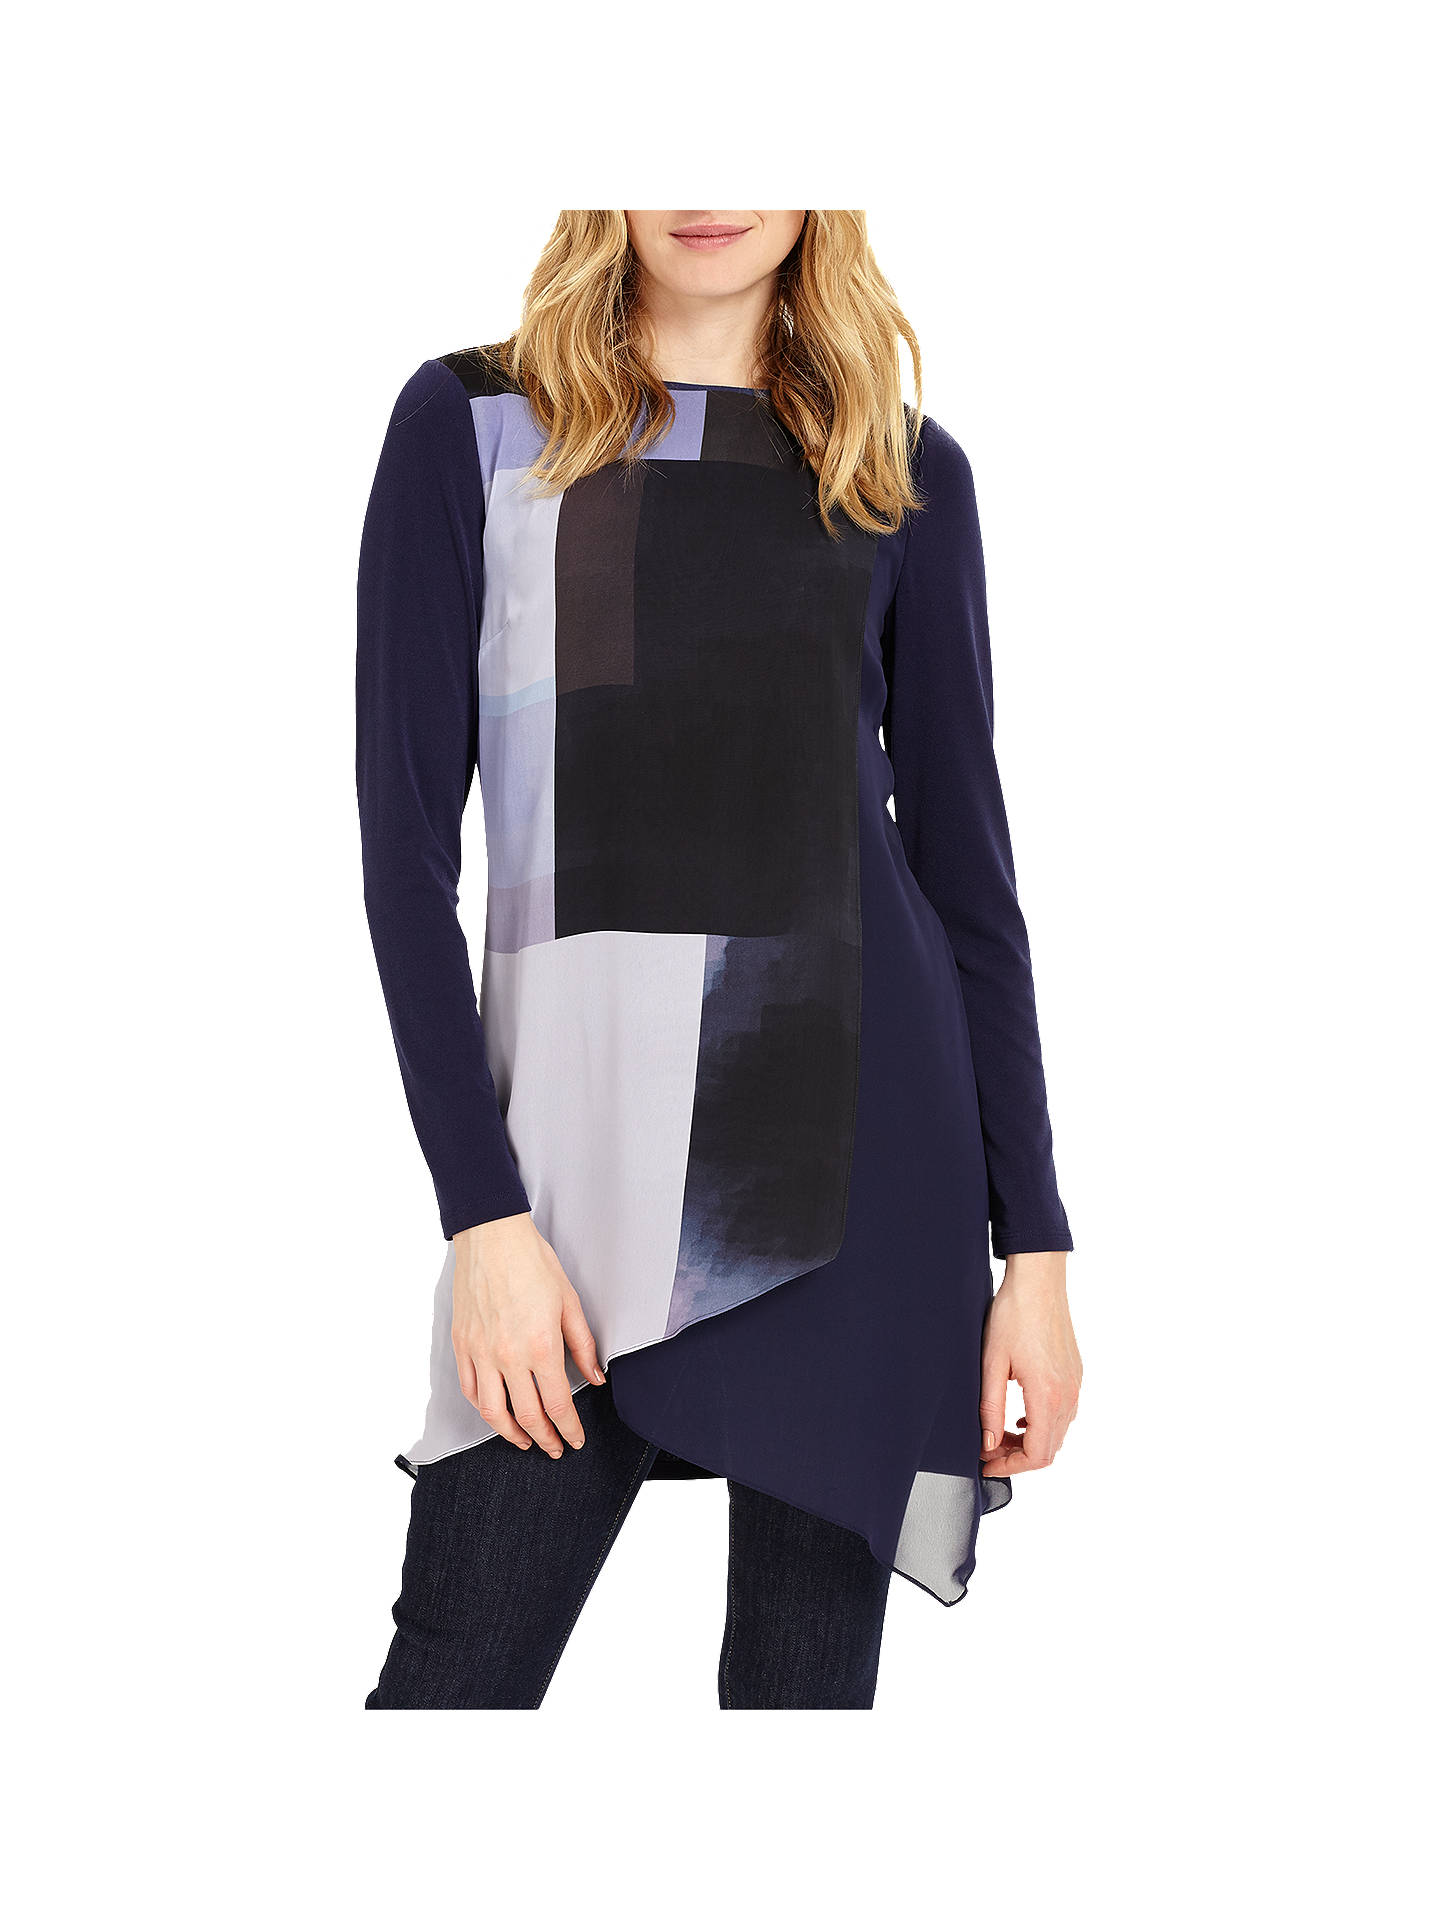 6014096a4cd Buy Phase Eight Vinny Colour Block Tunic, Navy, 8 Online at johnlewis.com  ...